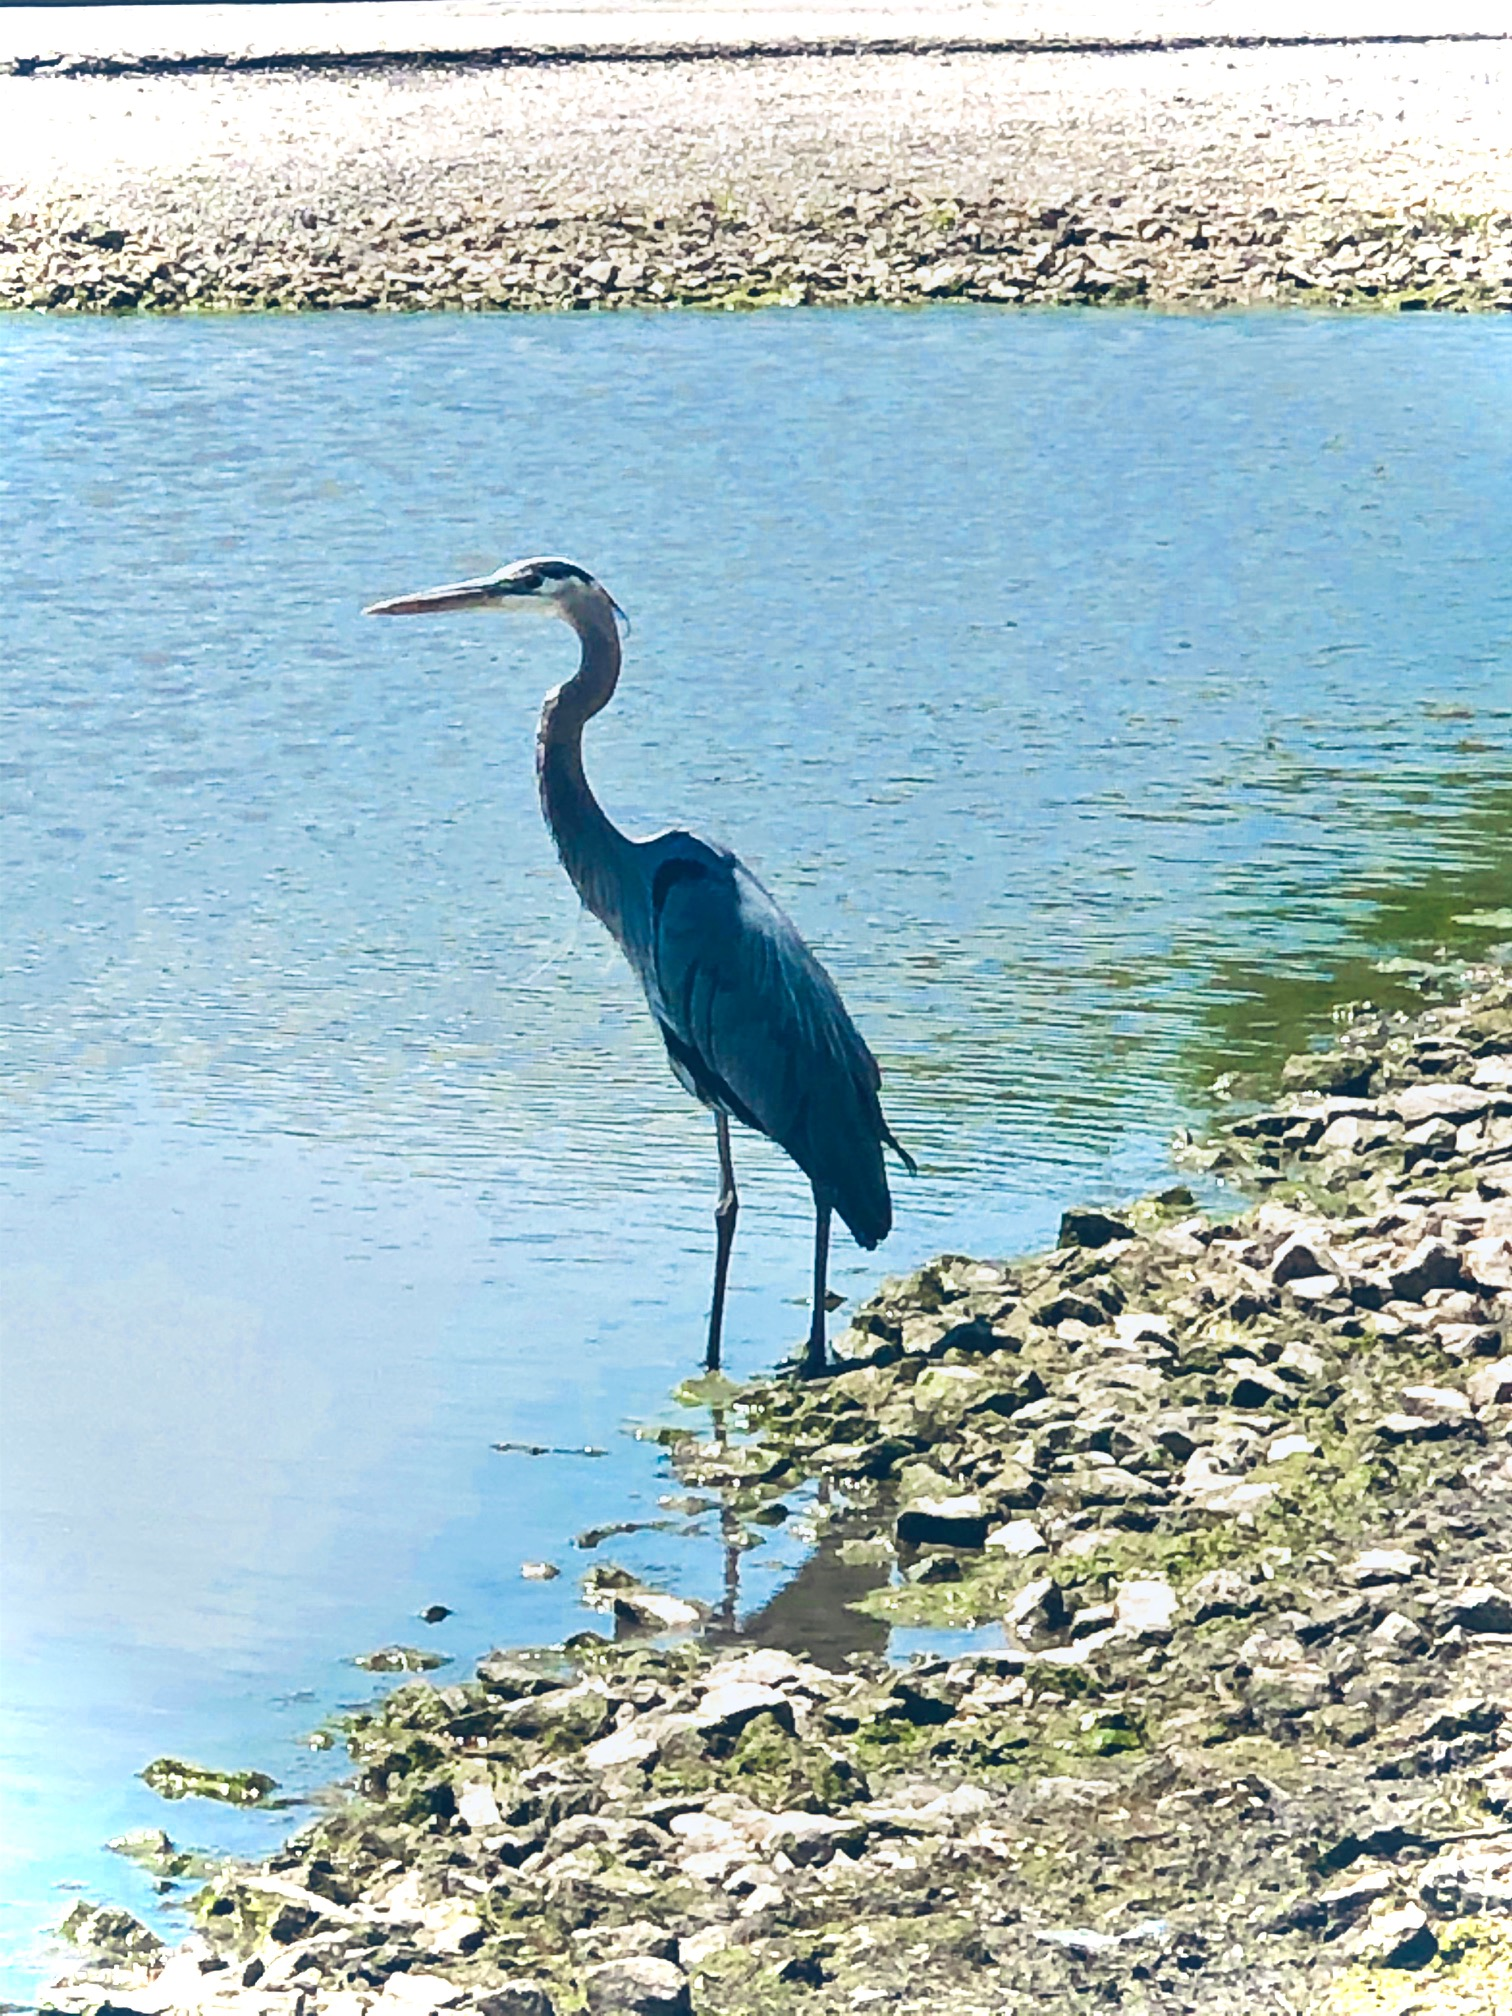 A great blue heron tries to stay cool by a pond.nature, wildlife, animal, bird, heron, great blue heron, pond, water  Photo: Jorge Noel Mendoza